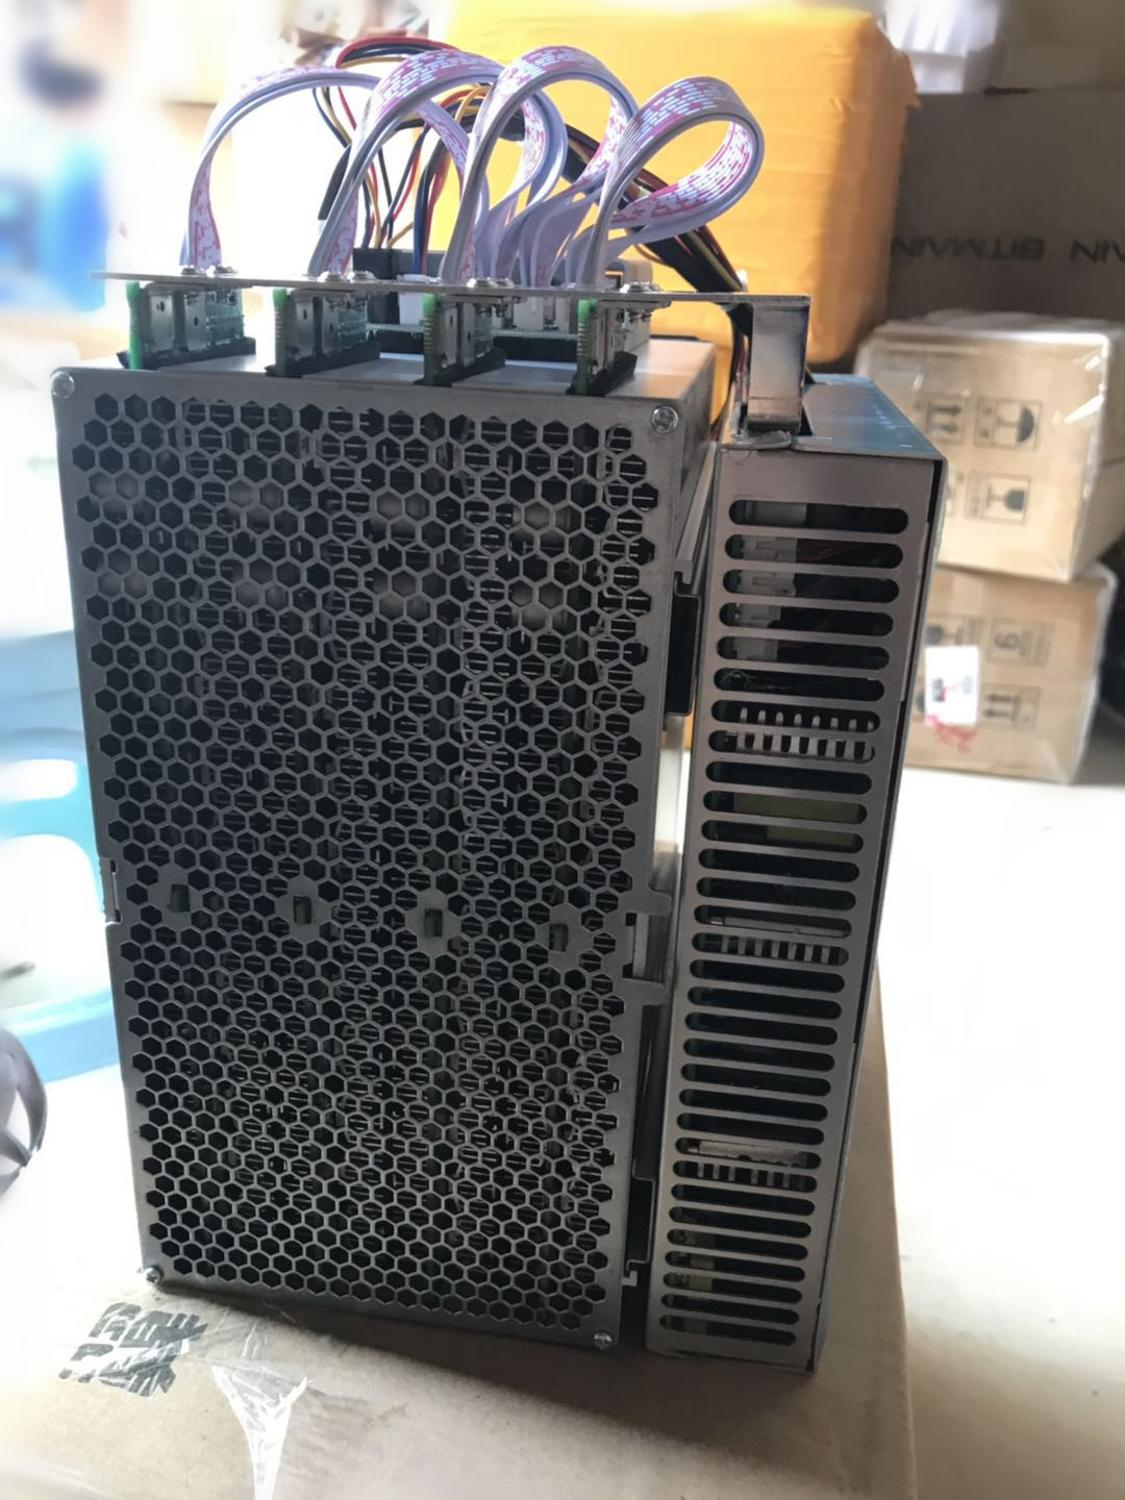 Used BTC Miner Love Core A1 Miner Aixin A1 24T With PSU Economic Than Antminer S9 S11 S15 S17 T17 S17+ WhatsMiner M3X M20S